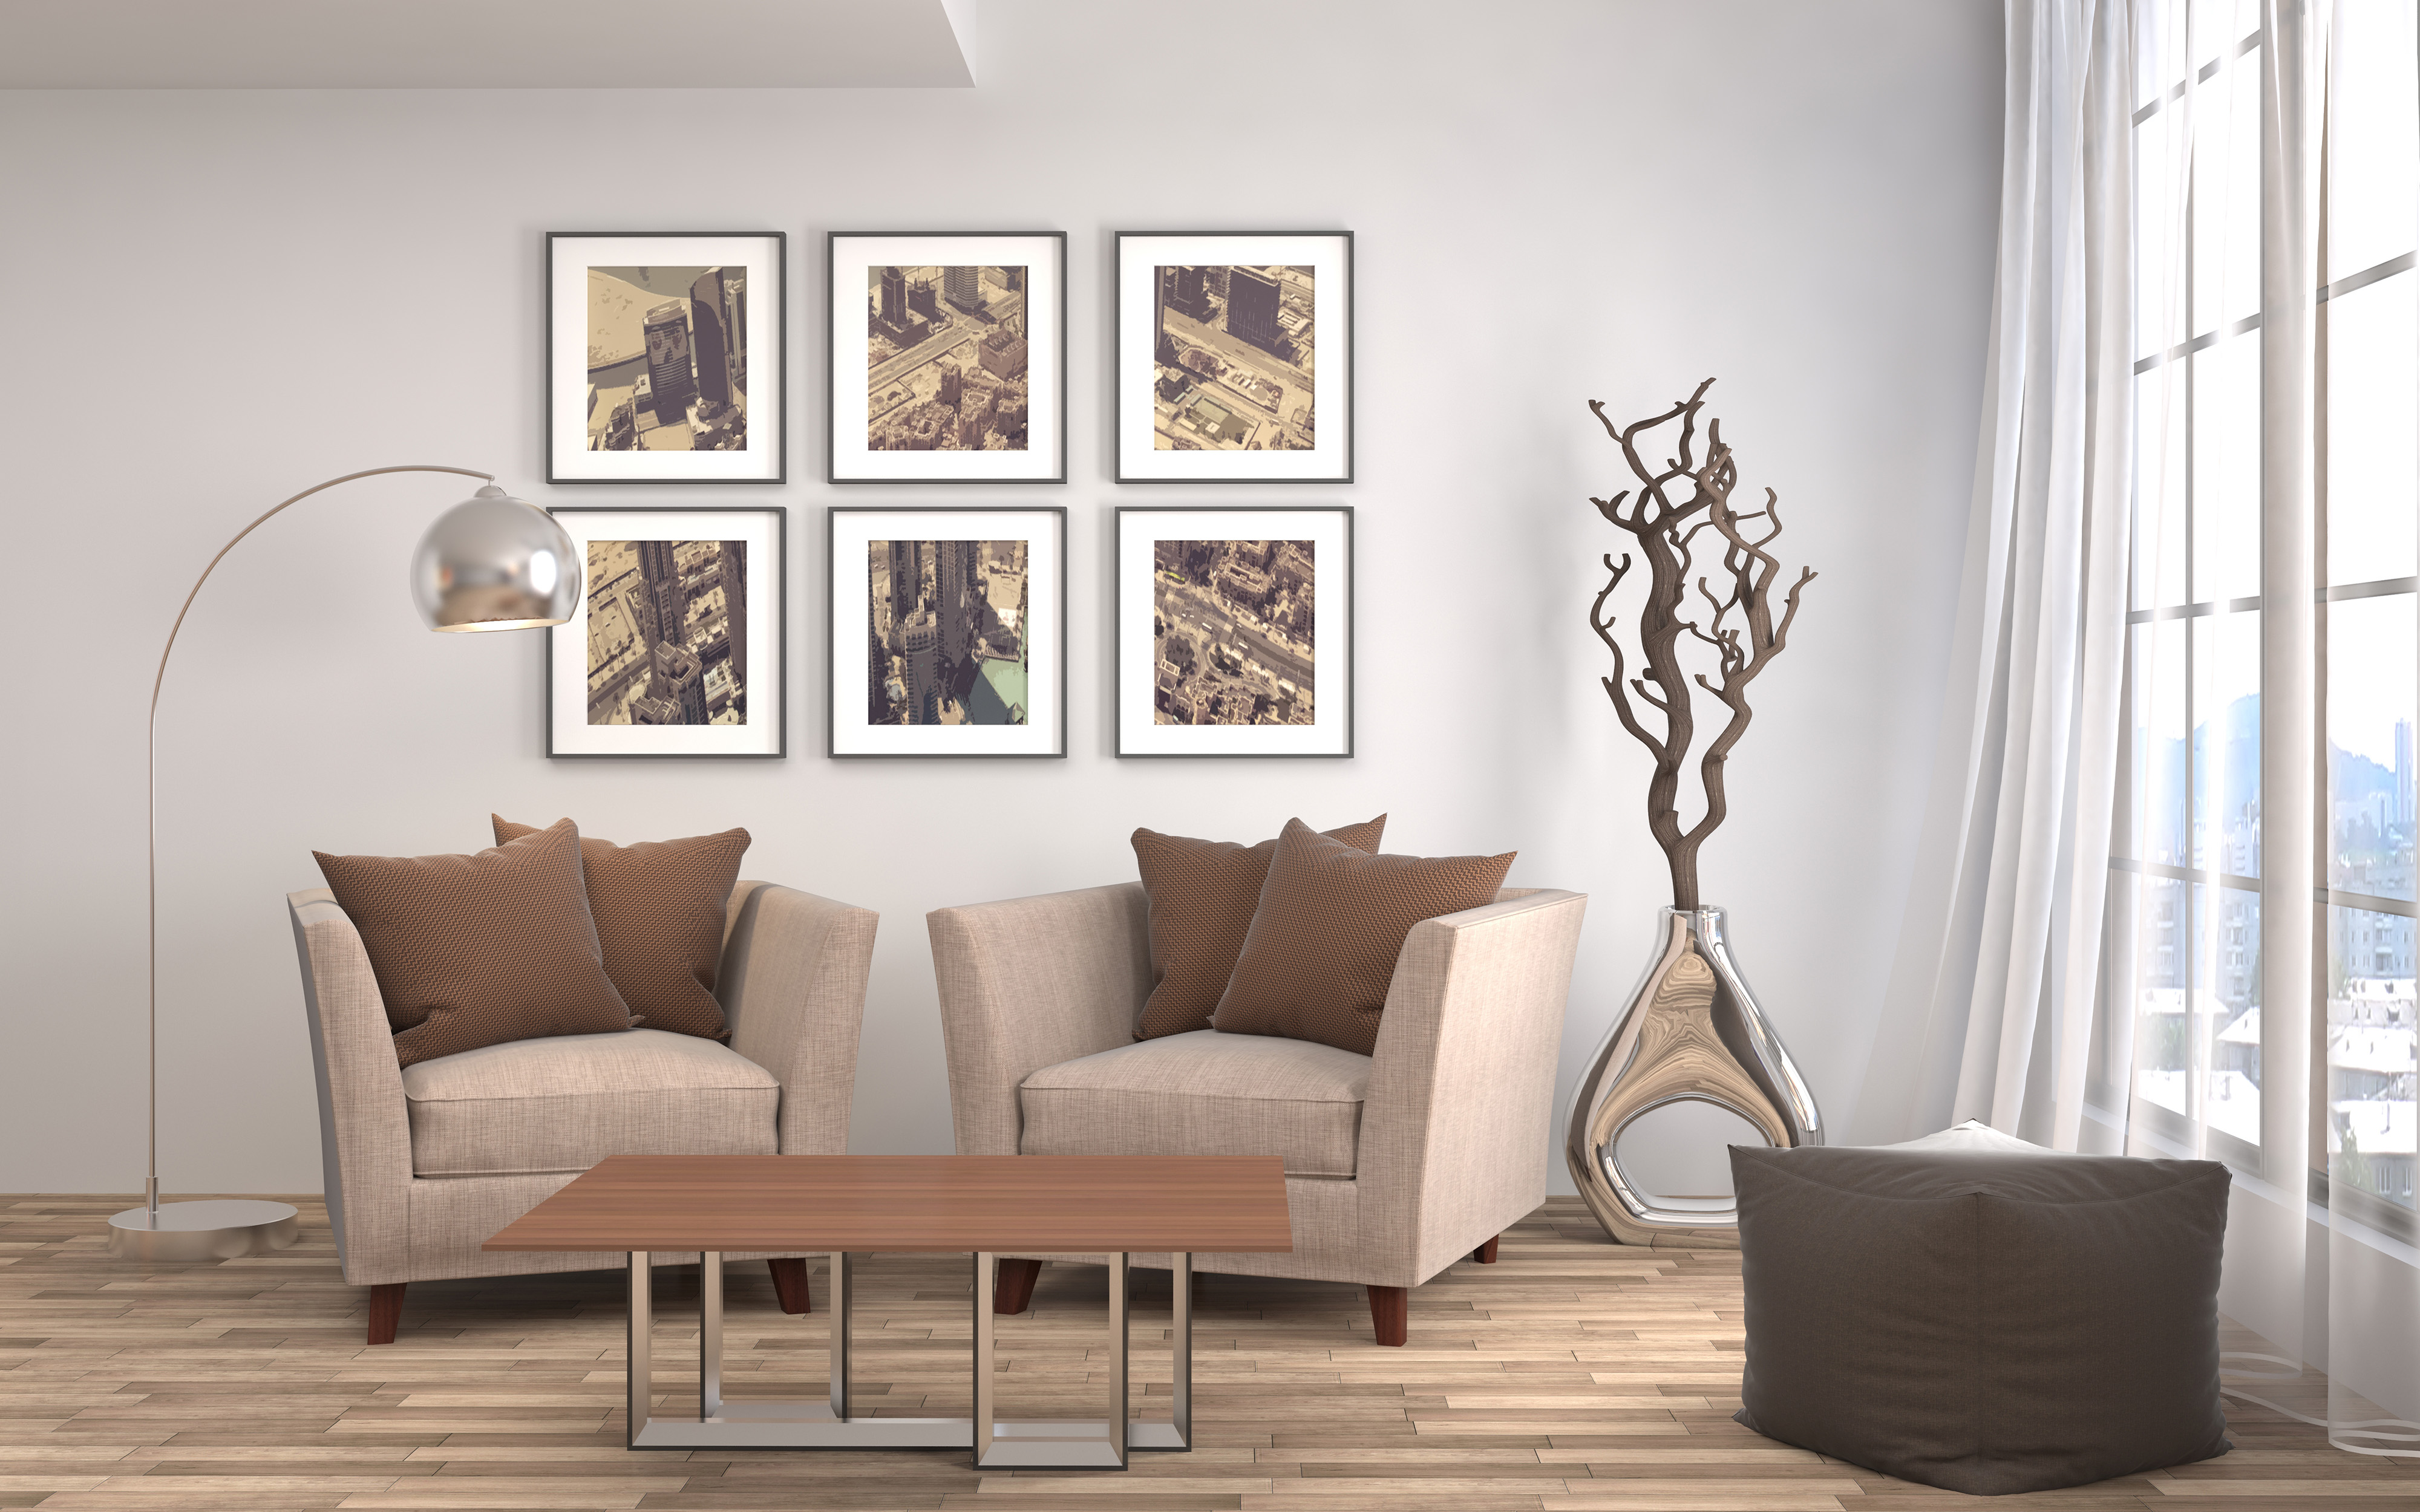 Floor lamp and decorative painting 55650